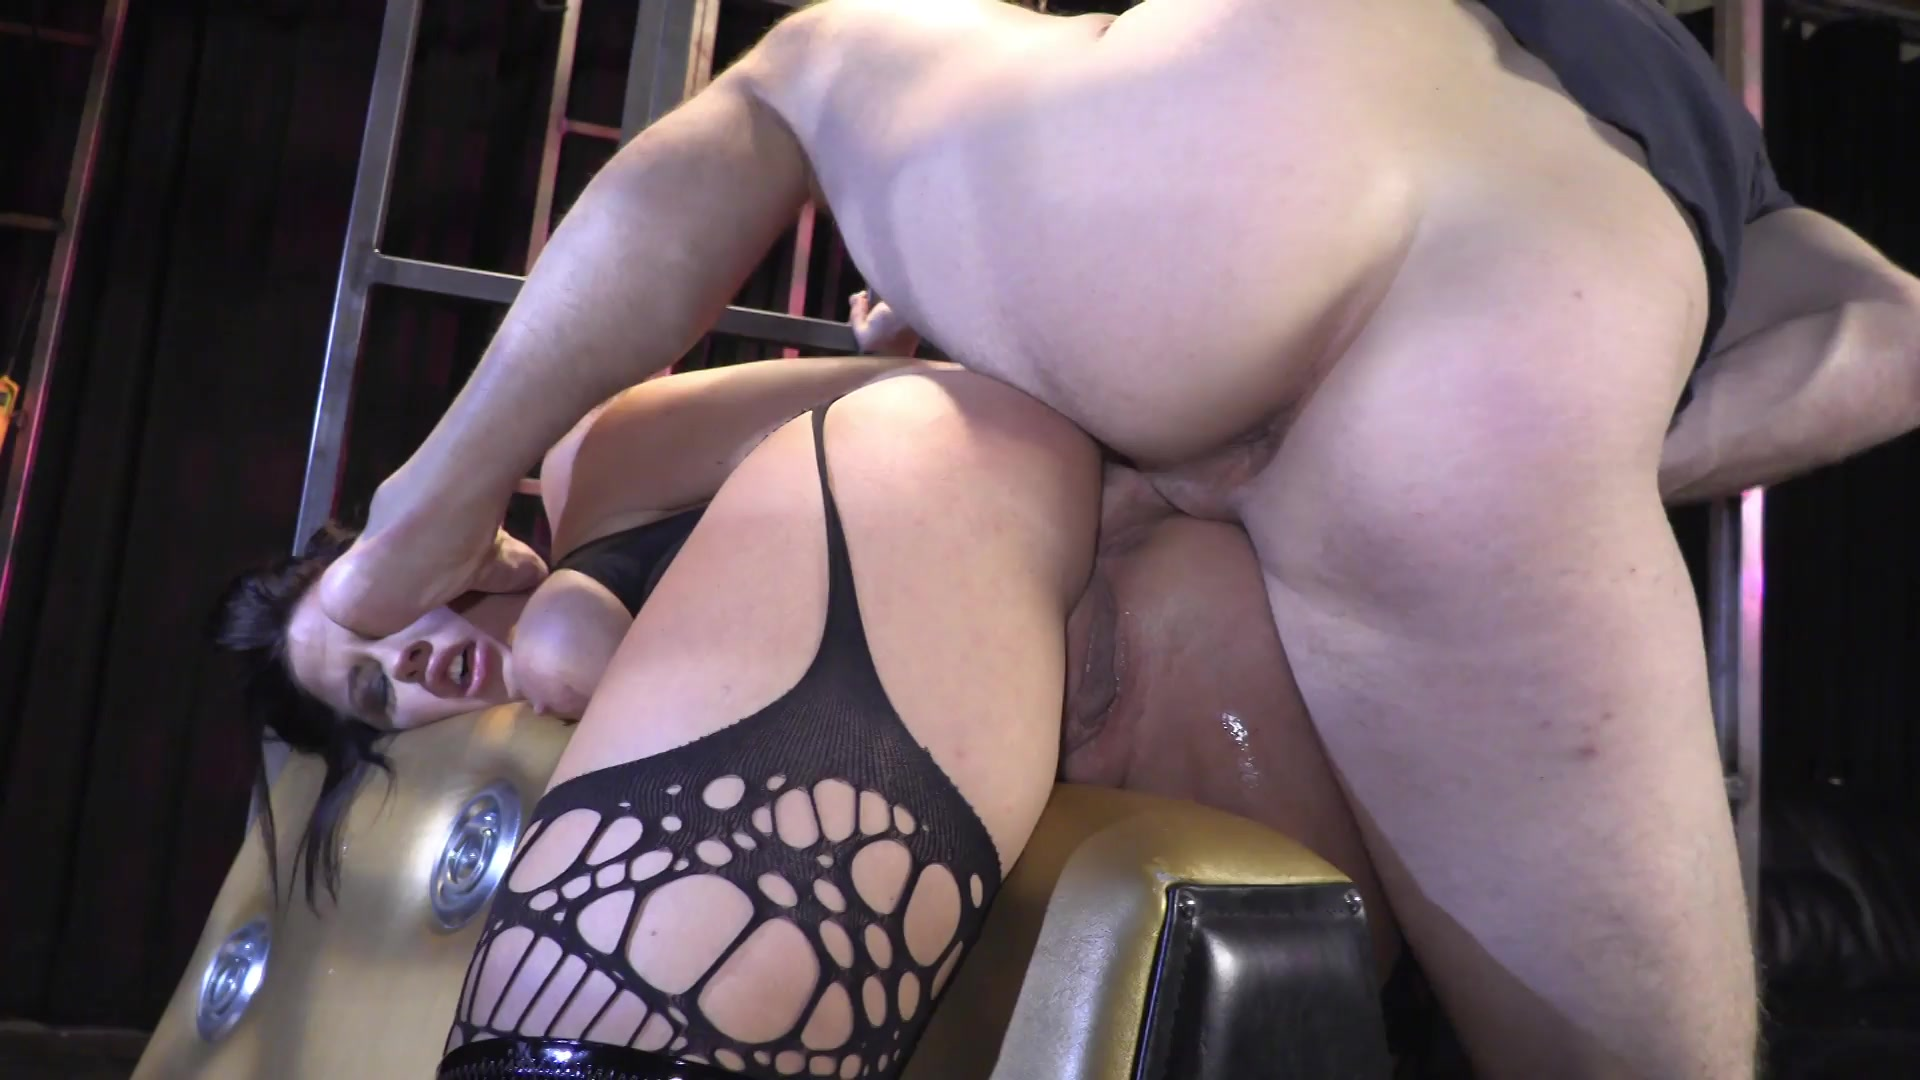 remarkable, asian toying her tight asshole this magnificent